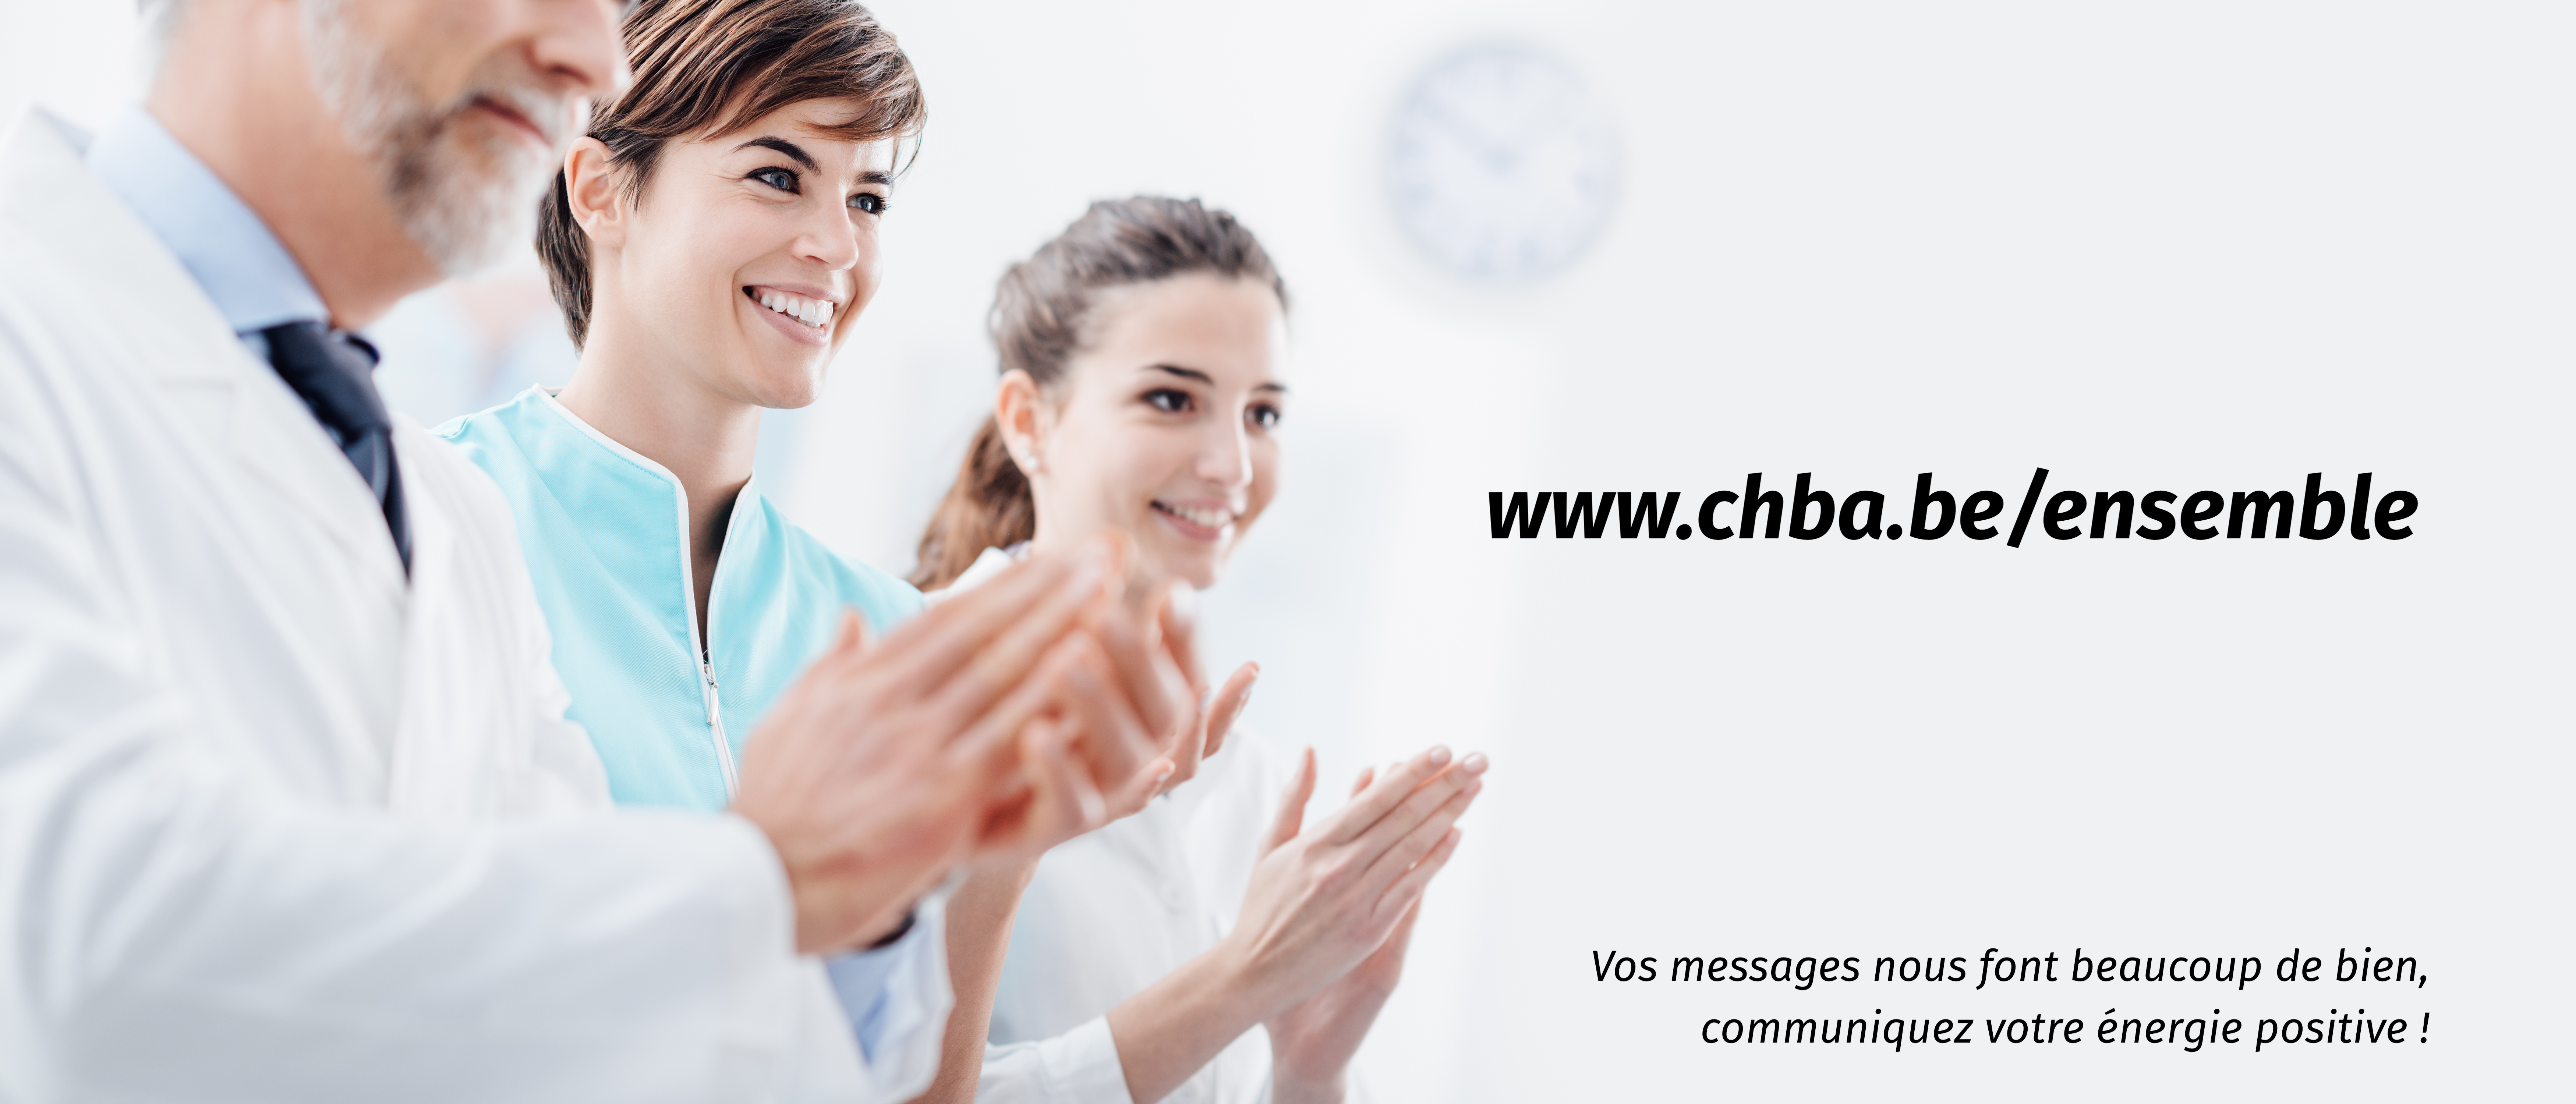 www.chba.be/ensemble